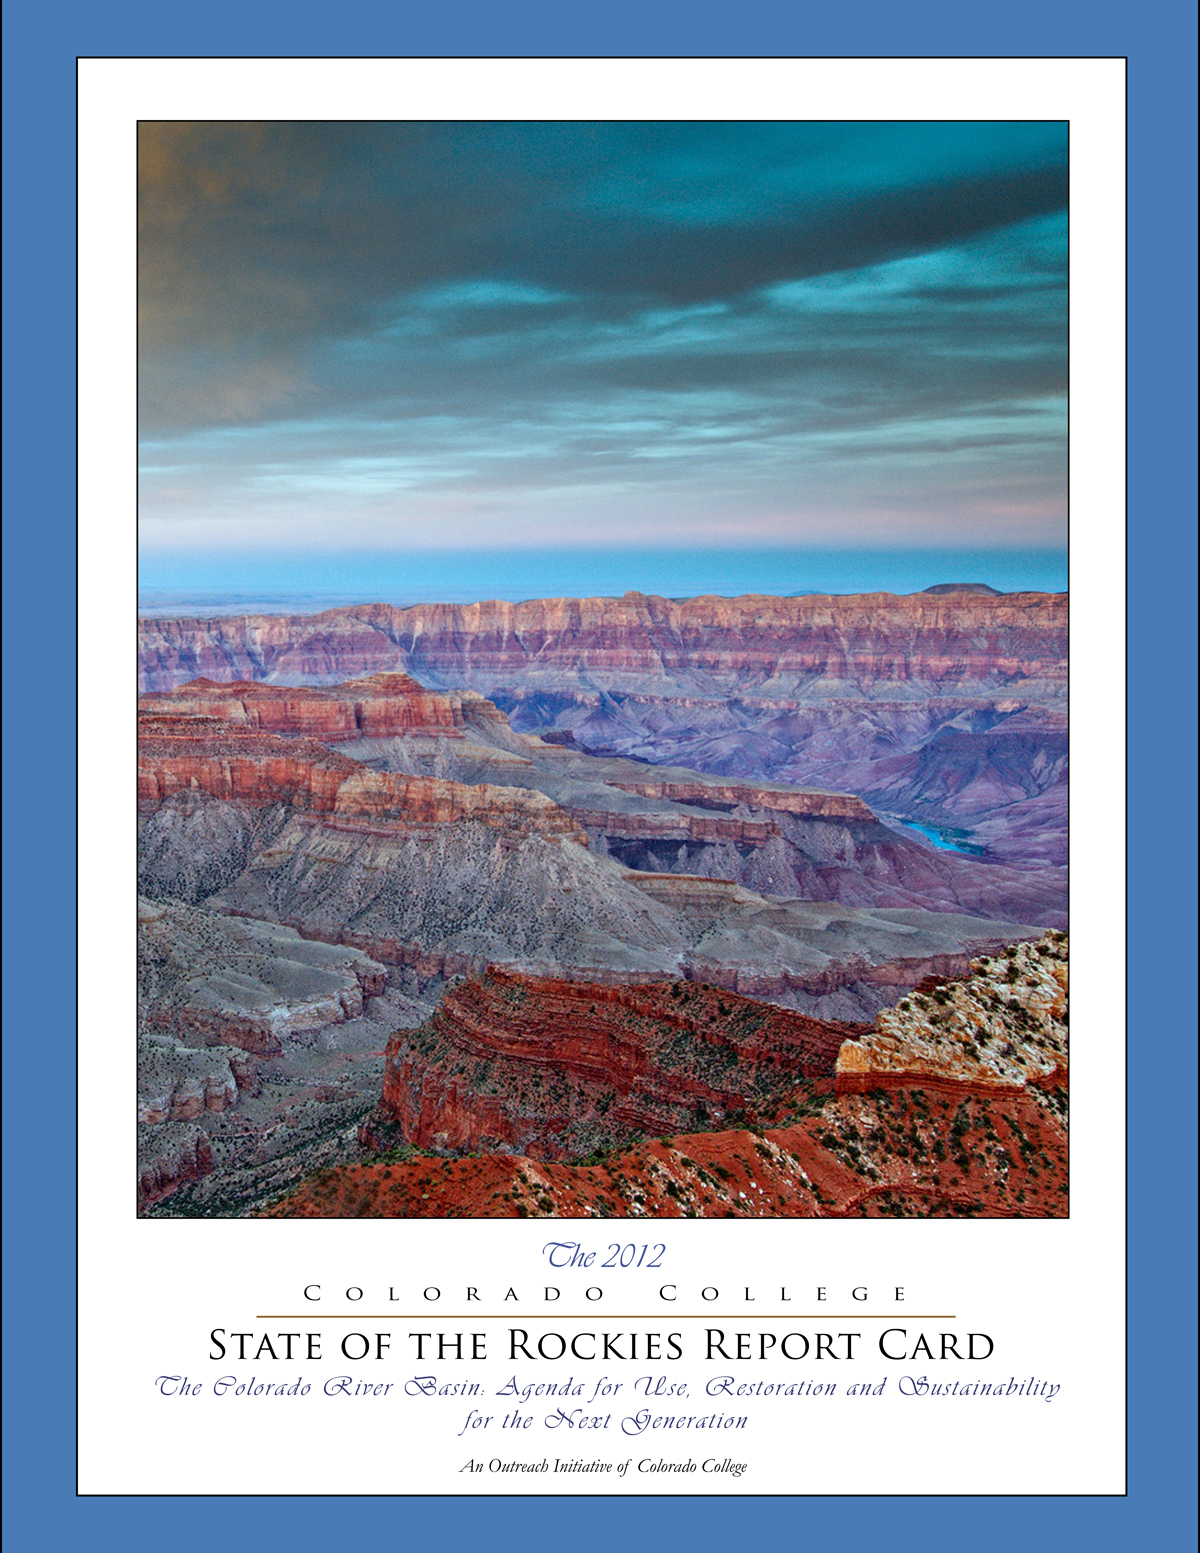 2012 State of the Rockies Report Card